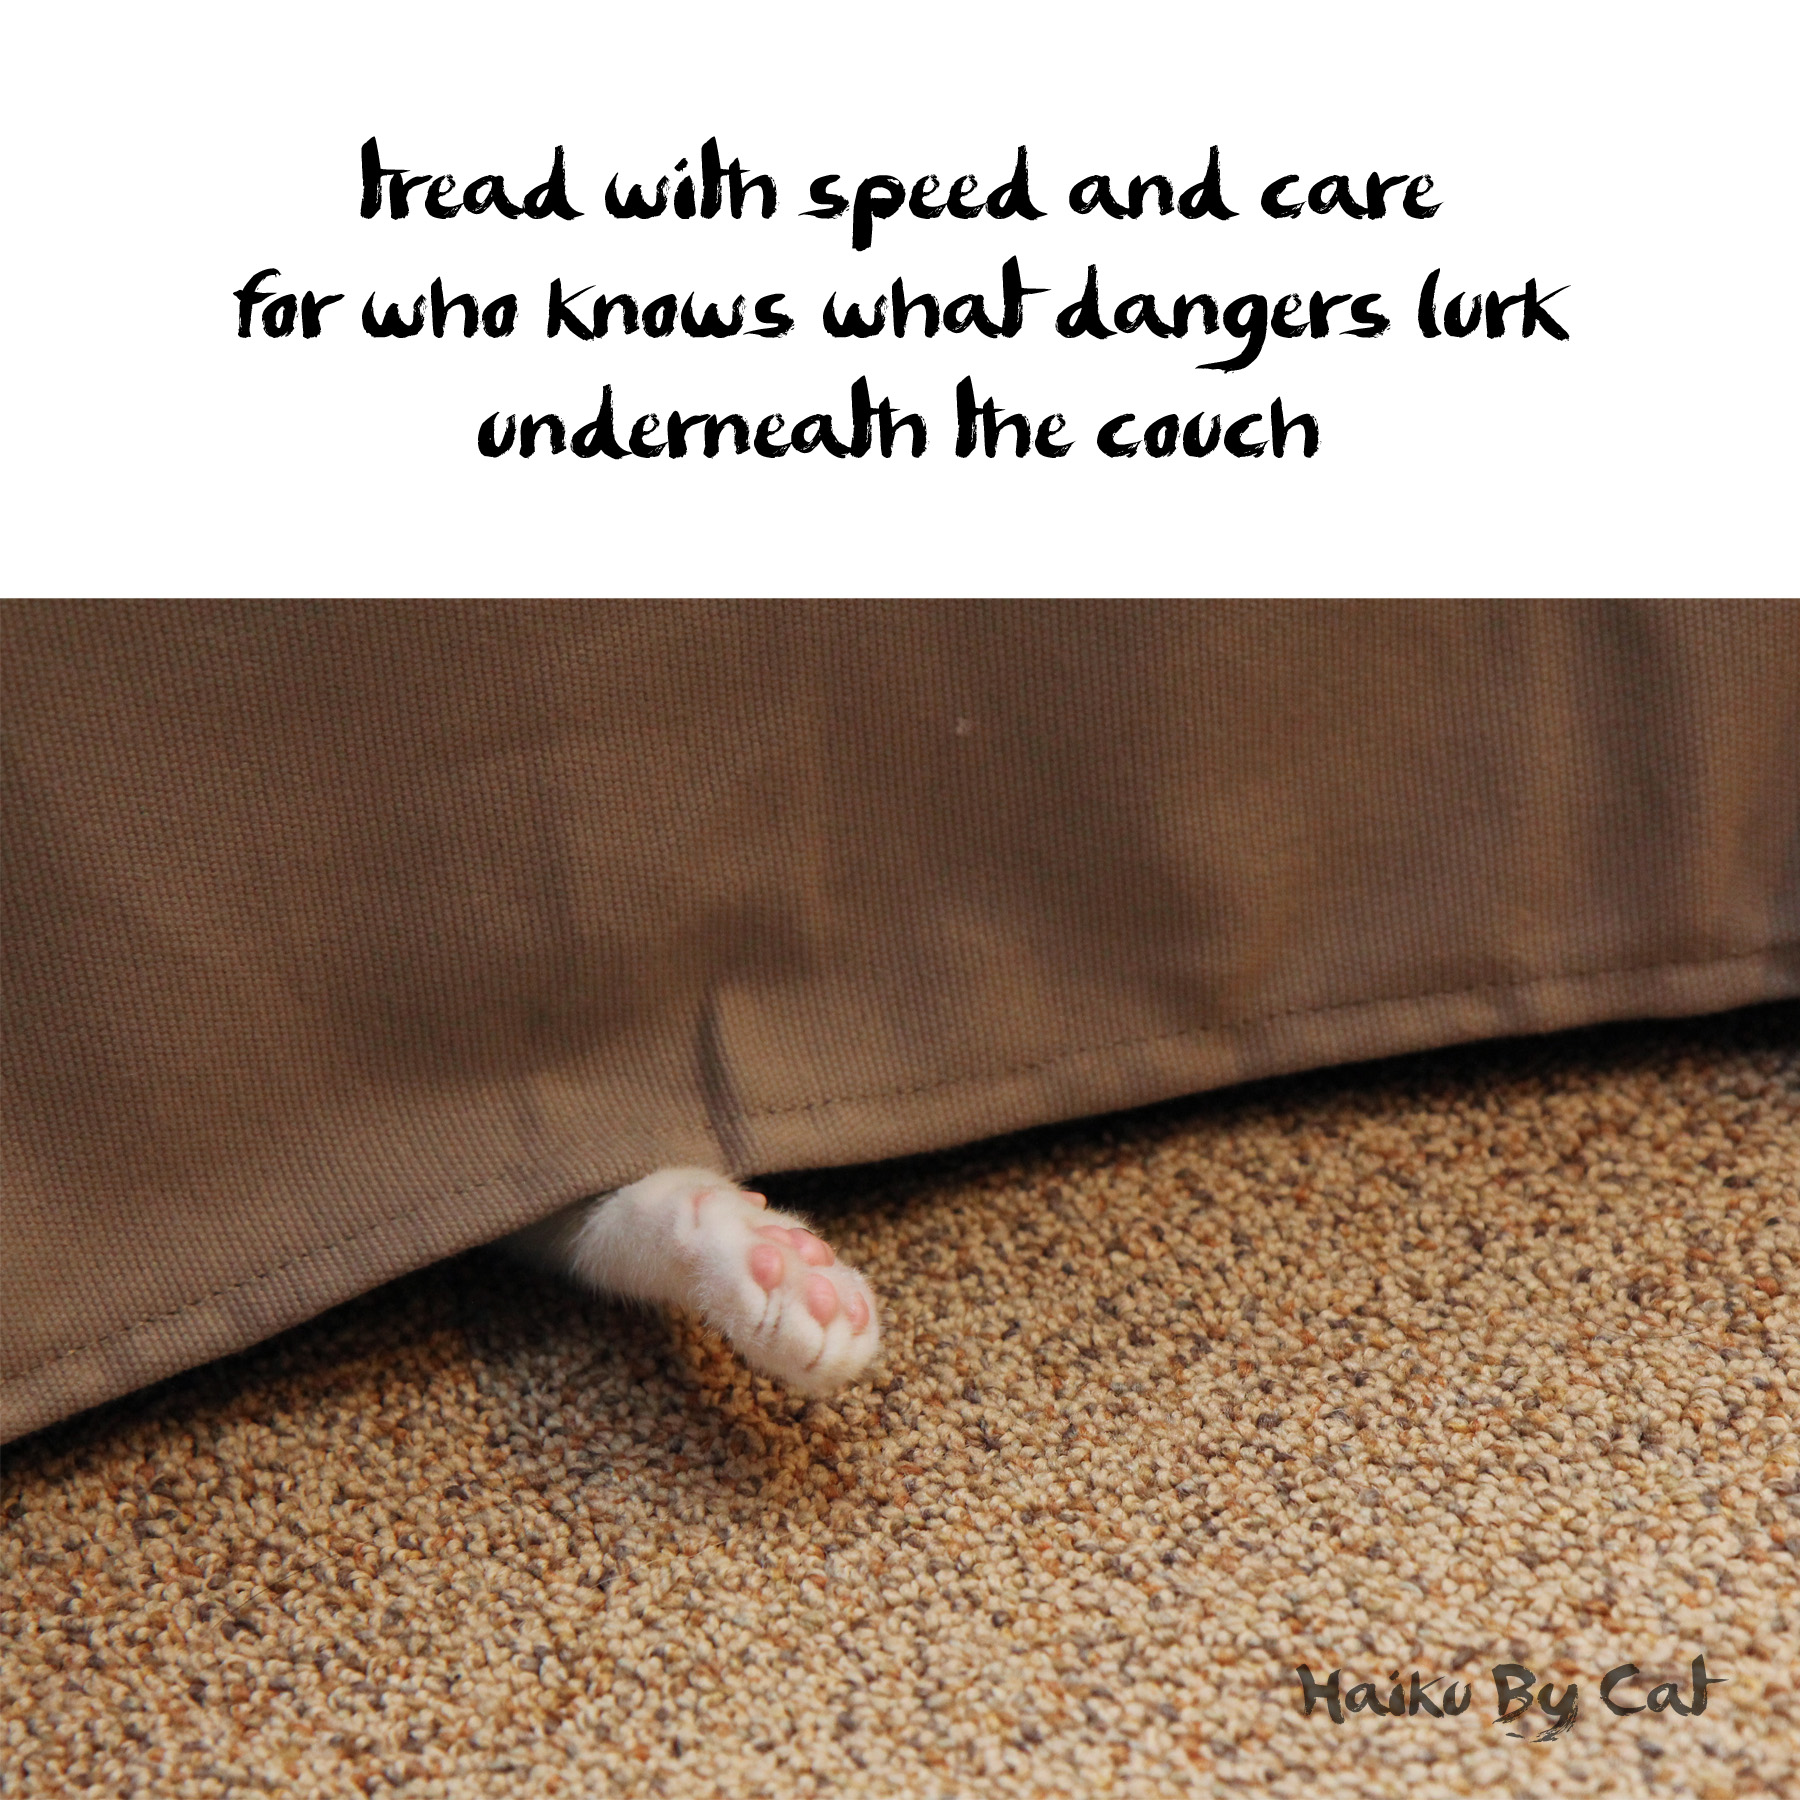 Haiku by Cat: tread with speed and care / for who knows what dangers lurk / underneath the couch